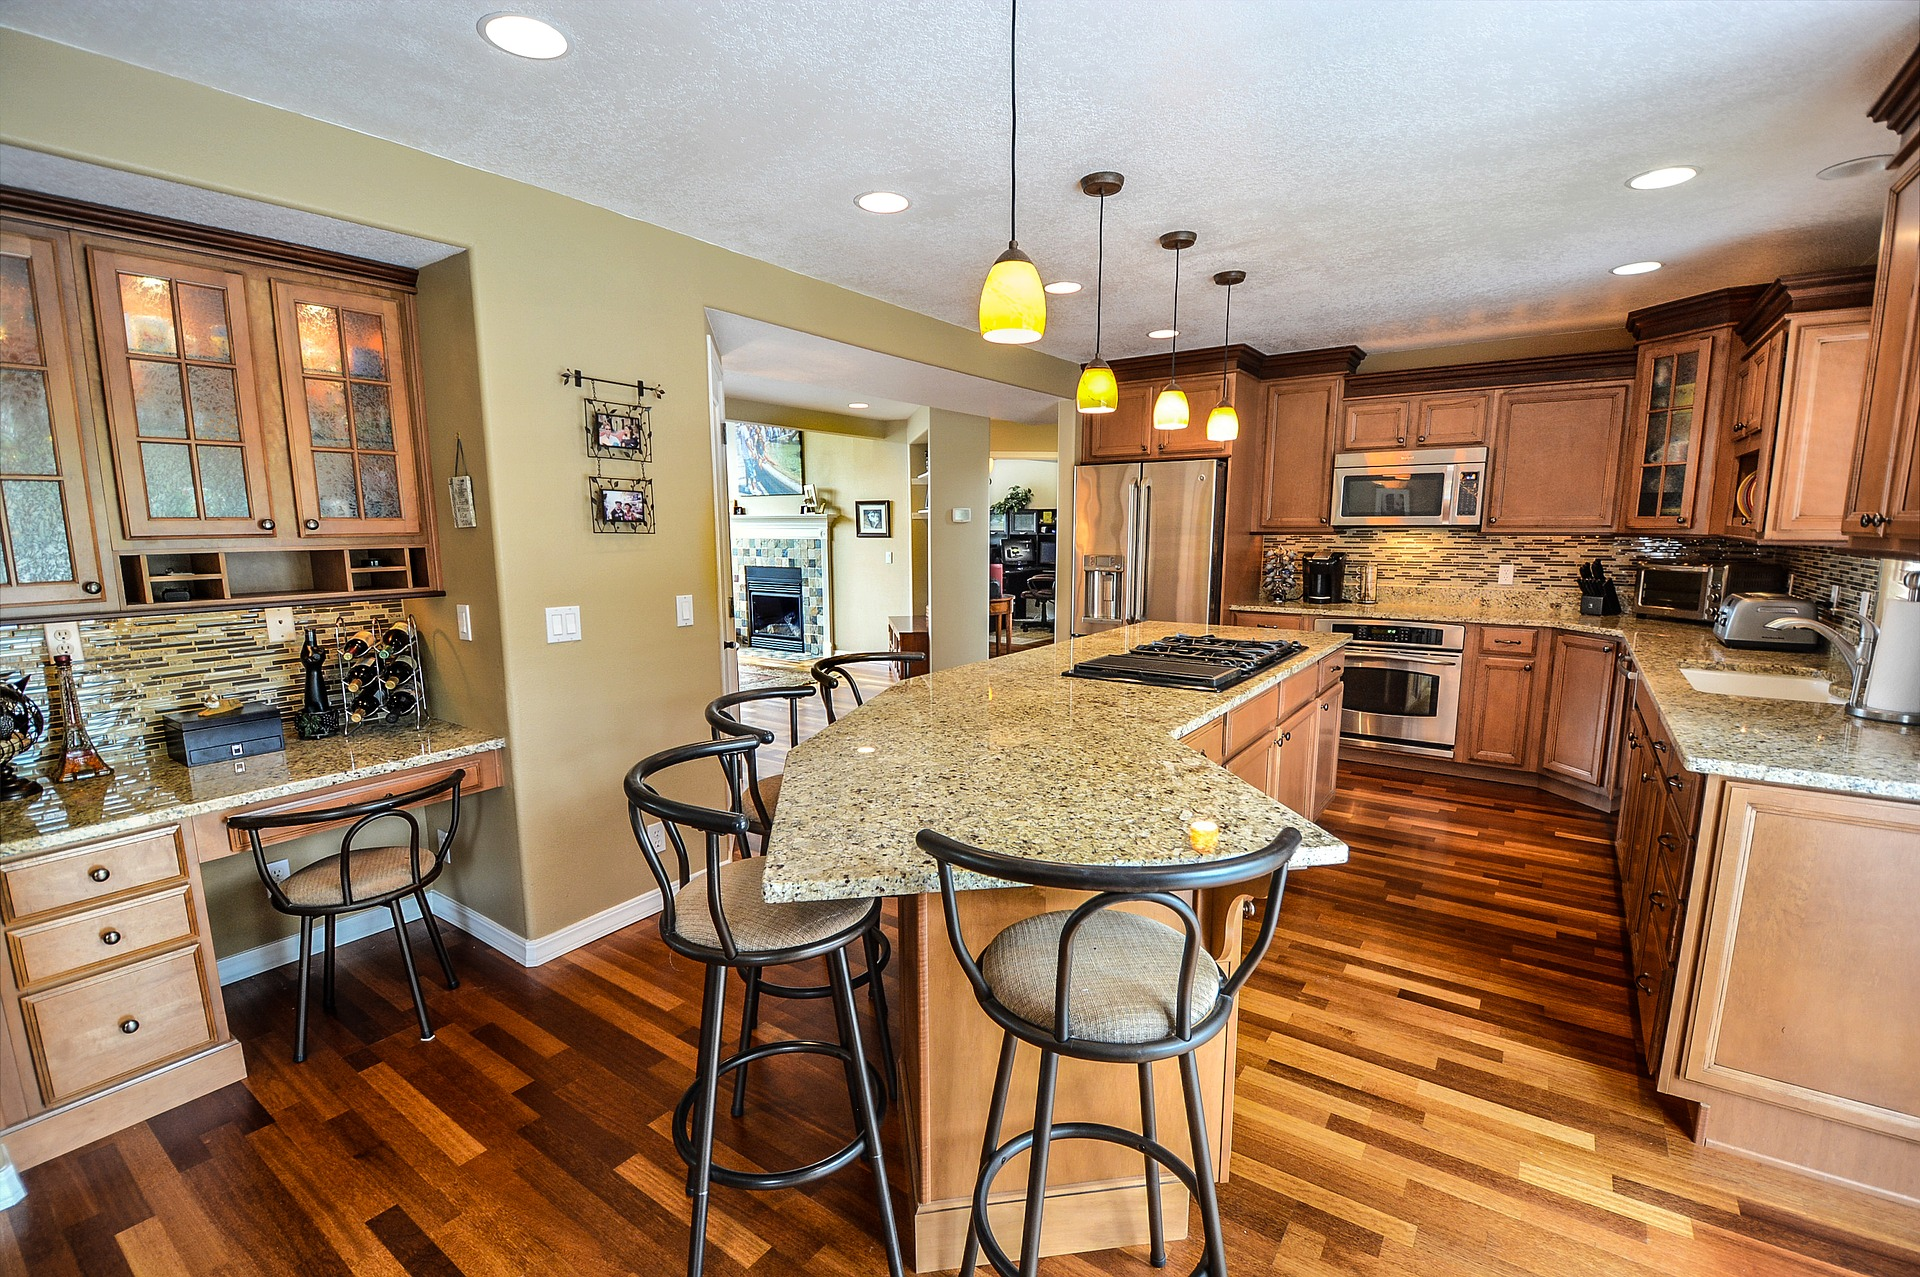 Use our trusted service to remodel your home